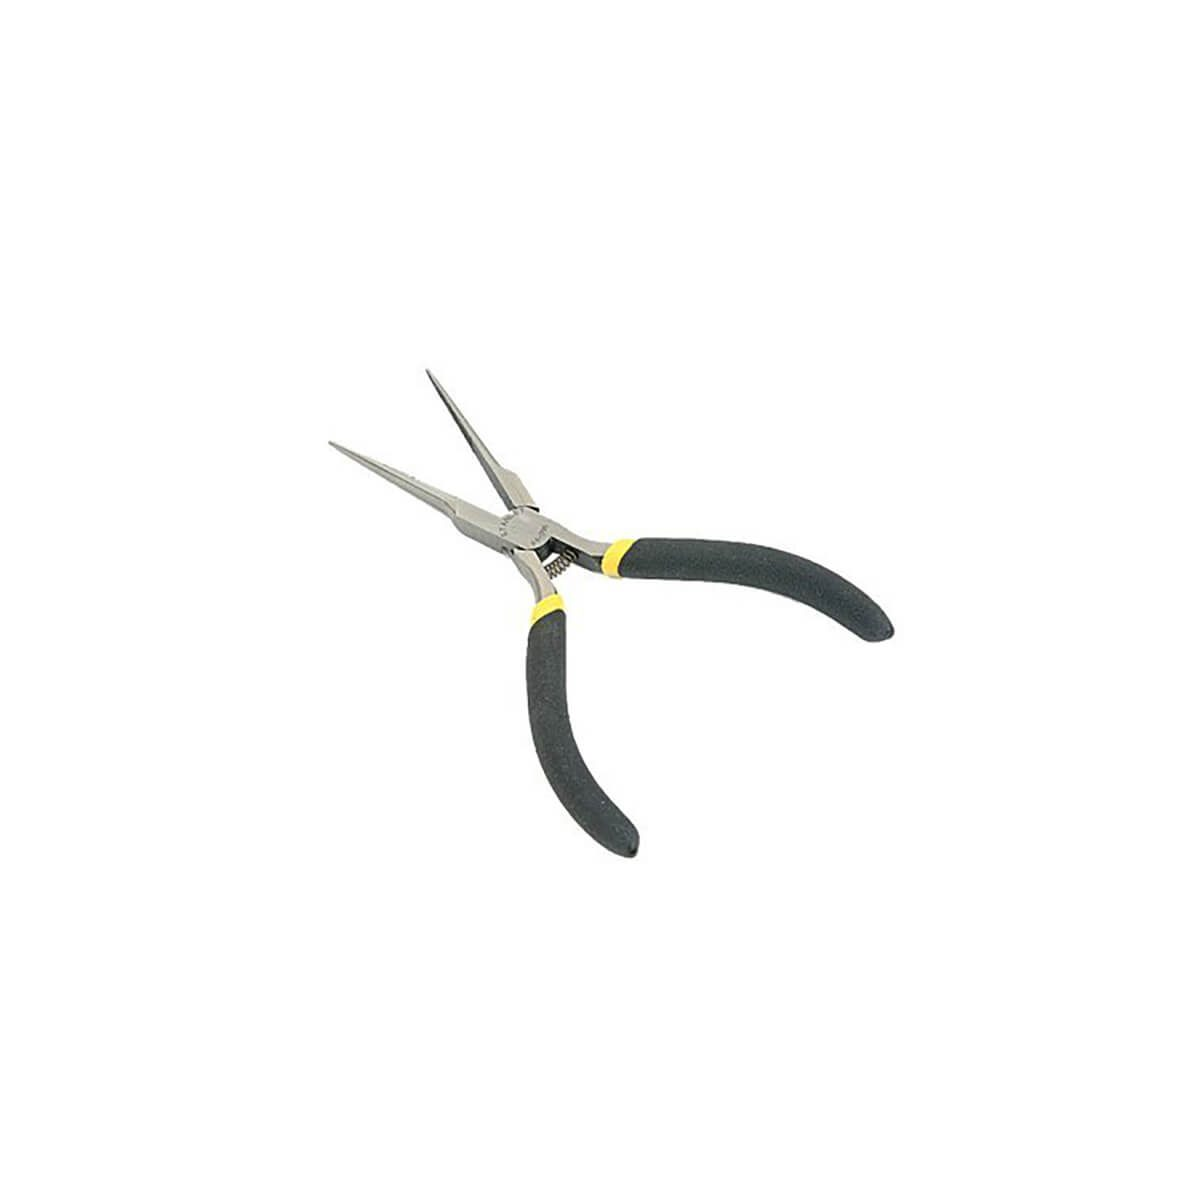 Stanley 84-096 5-In. Needle Nose Plier